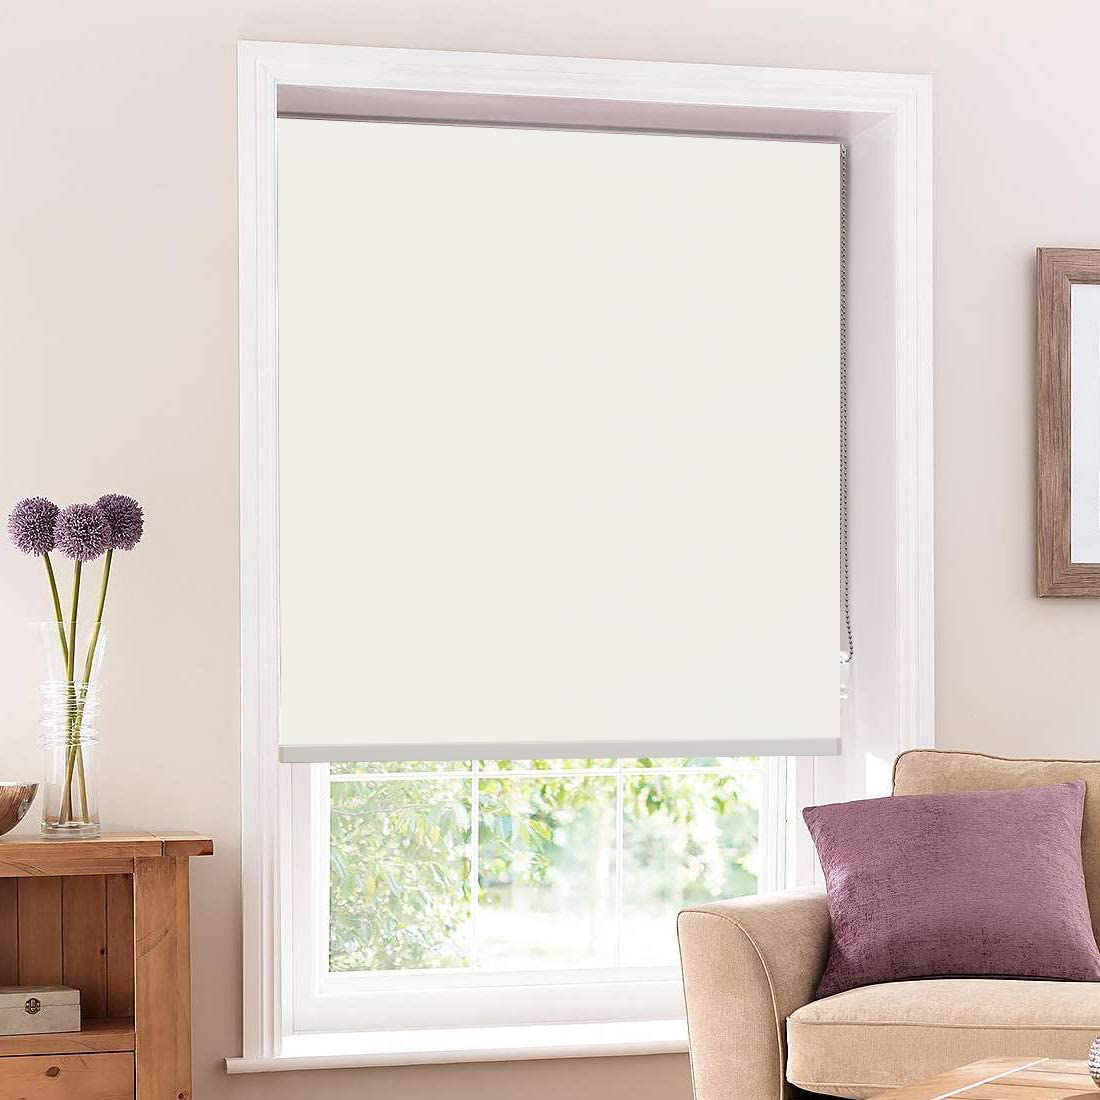 Keego Room Darkening Roller Shades-Window Black Out Shades-Thermal Blind